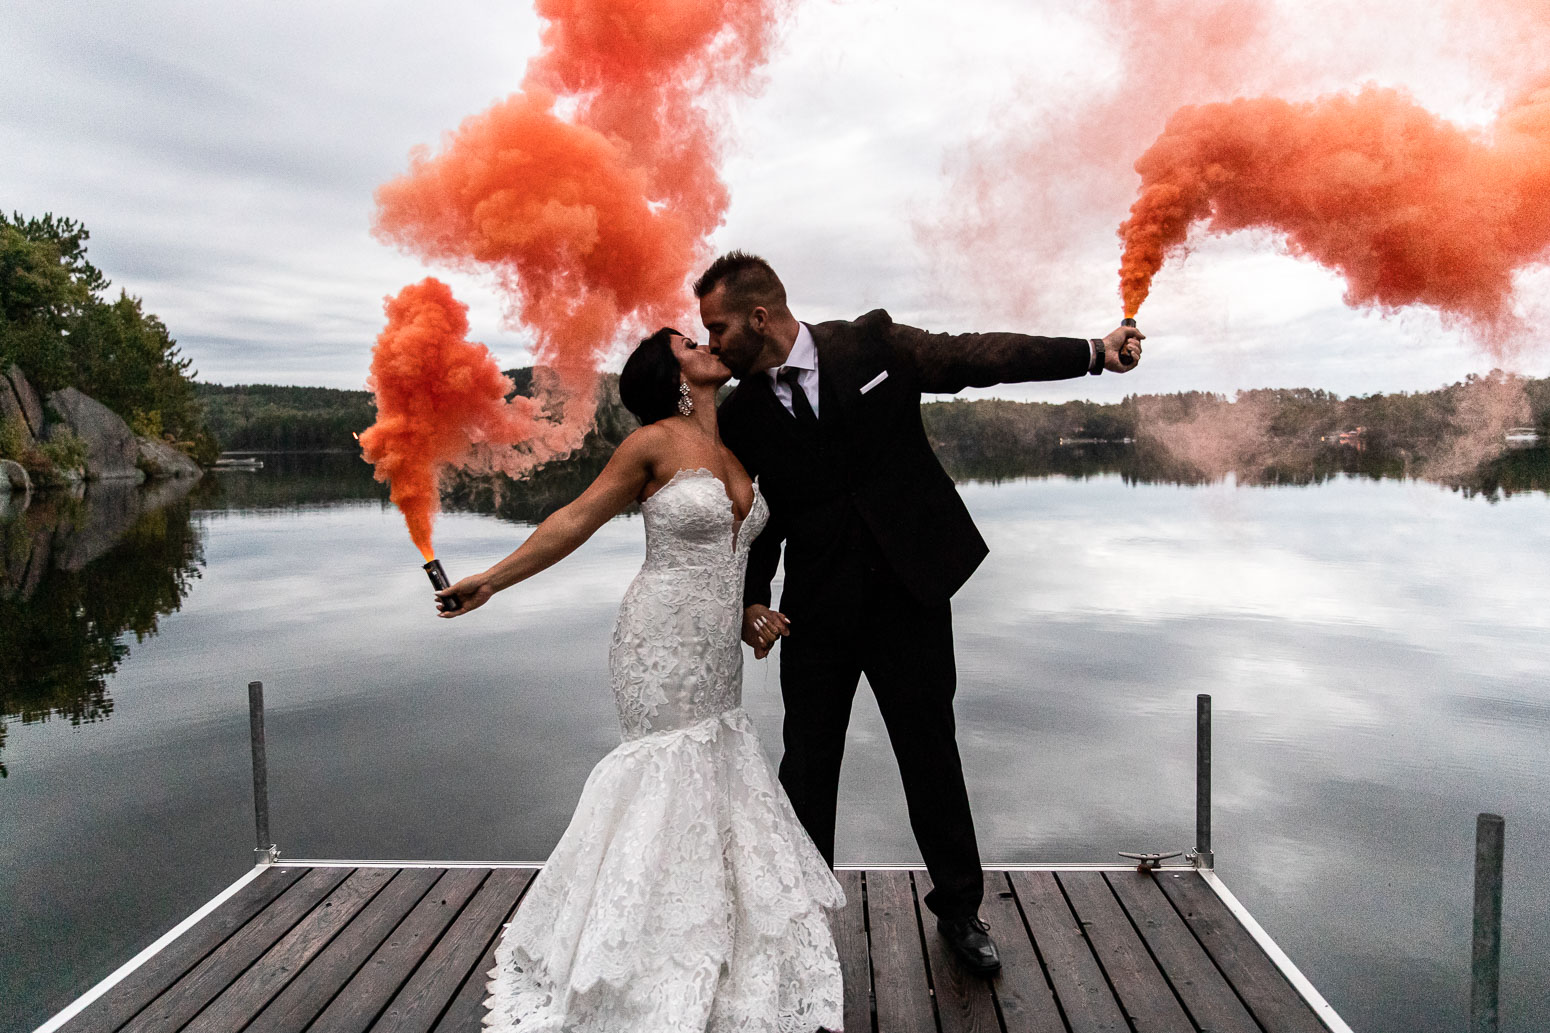 Bride, Groom, Wedding, Wedding Photo, akaiserphoto, Smoke grenades, wedding photographer, sudbury photographer